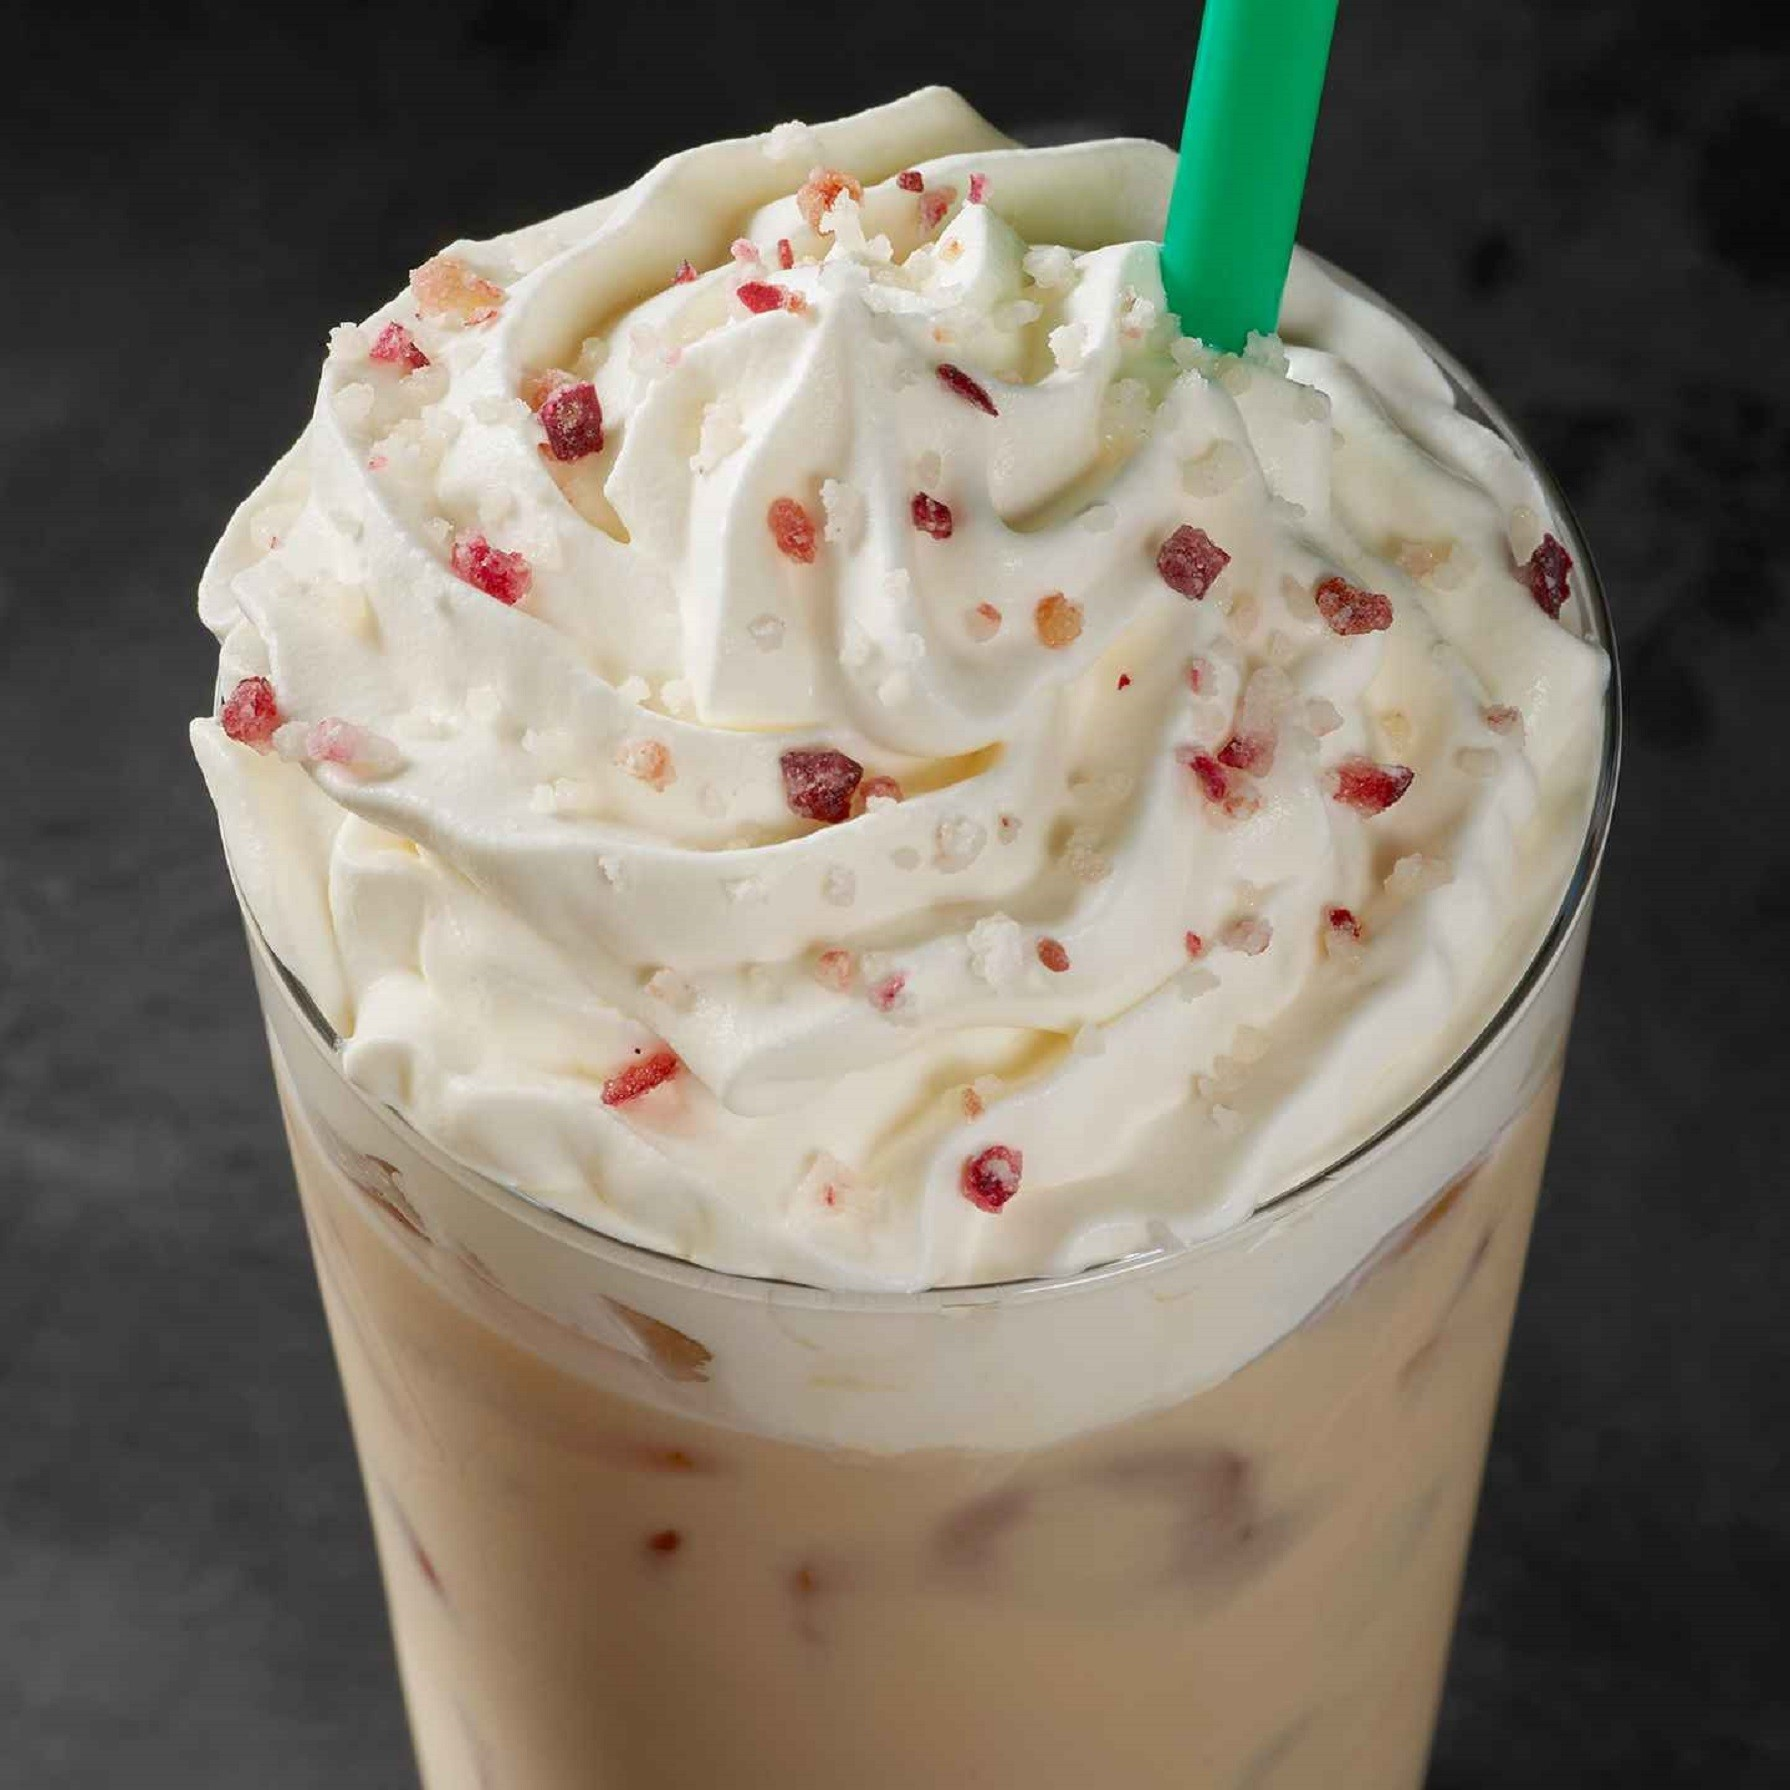 Starbucks Launches Toasted White Chocolate Mocha To Fill